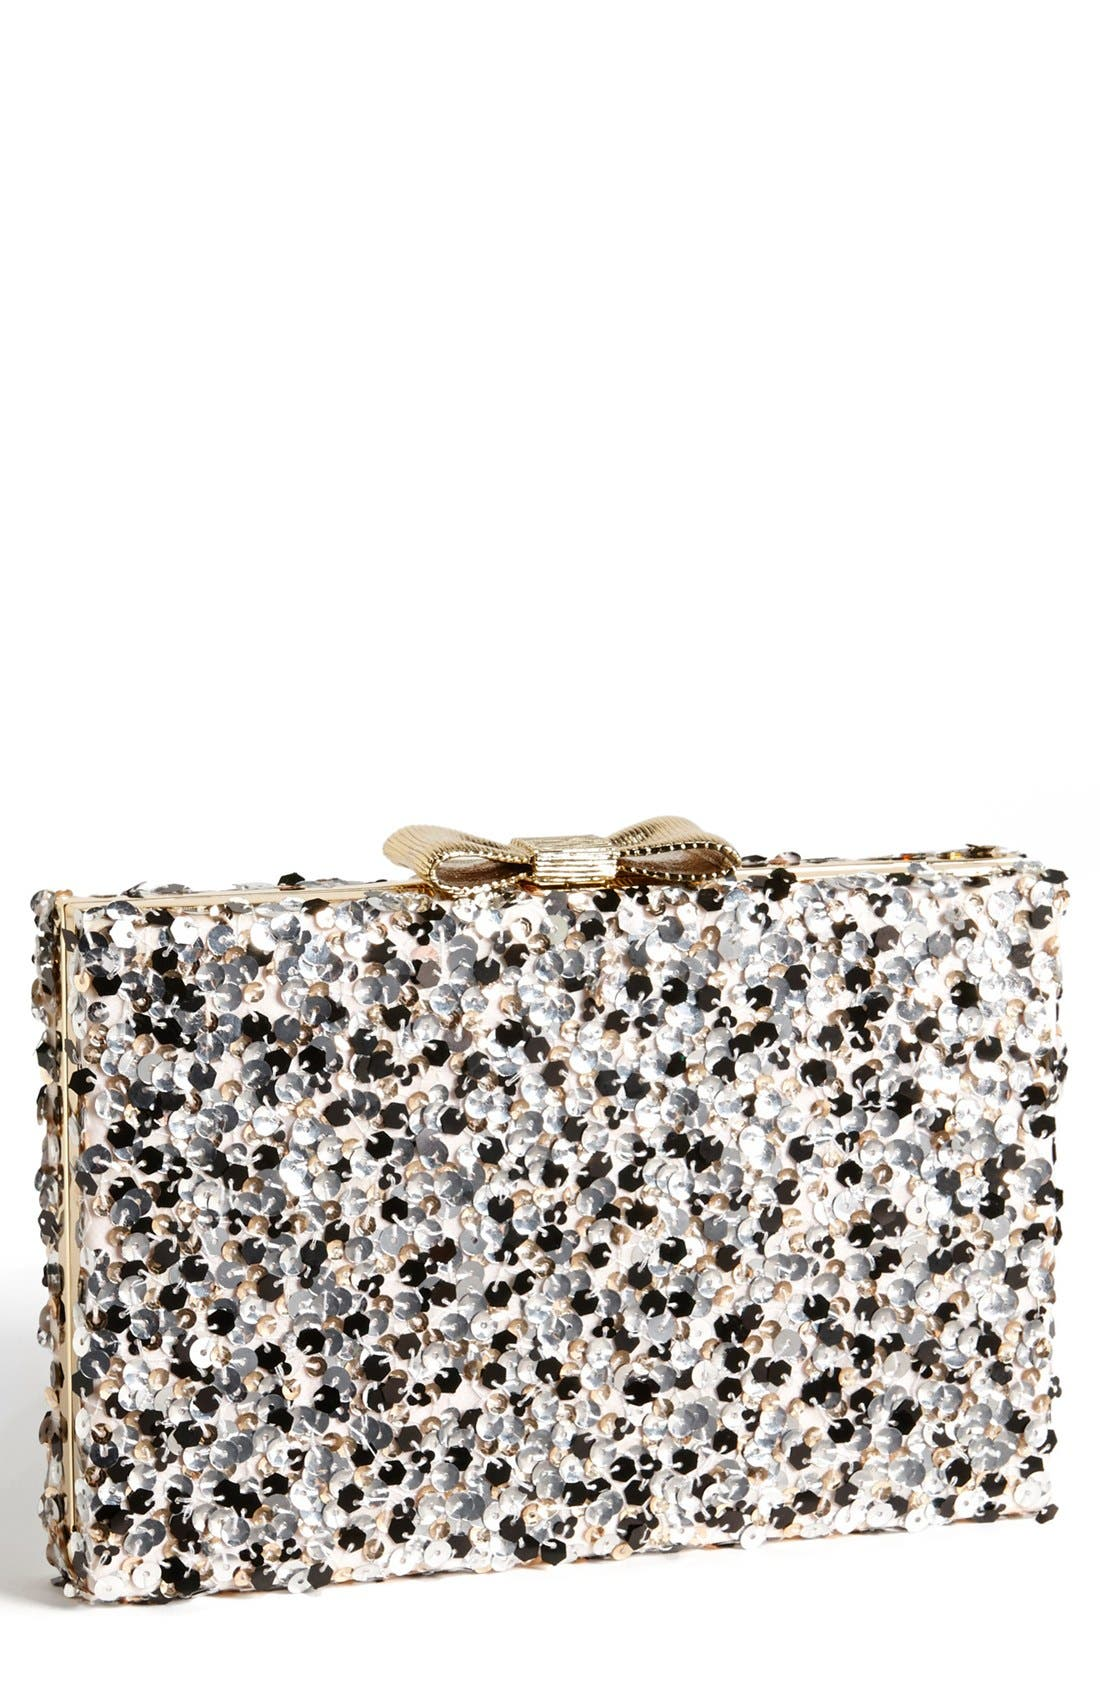 KATE SPADE NEW YORK, 'emanuelle' clutch, Main thumbnail 1, color, 256